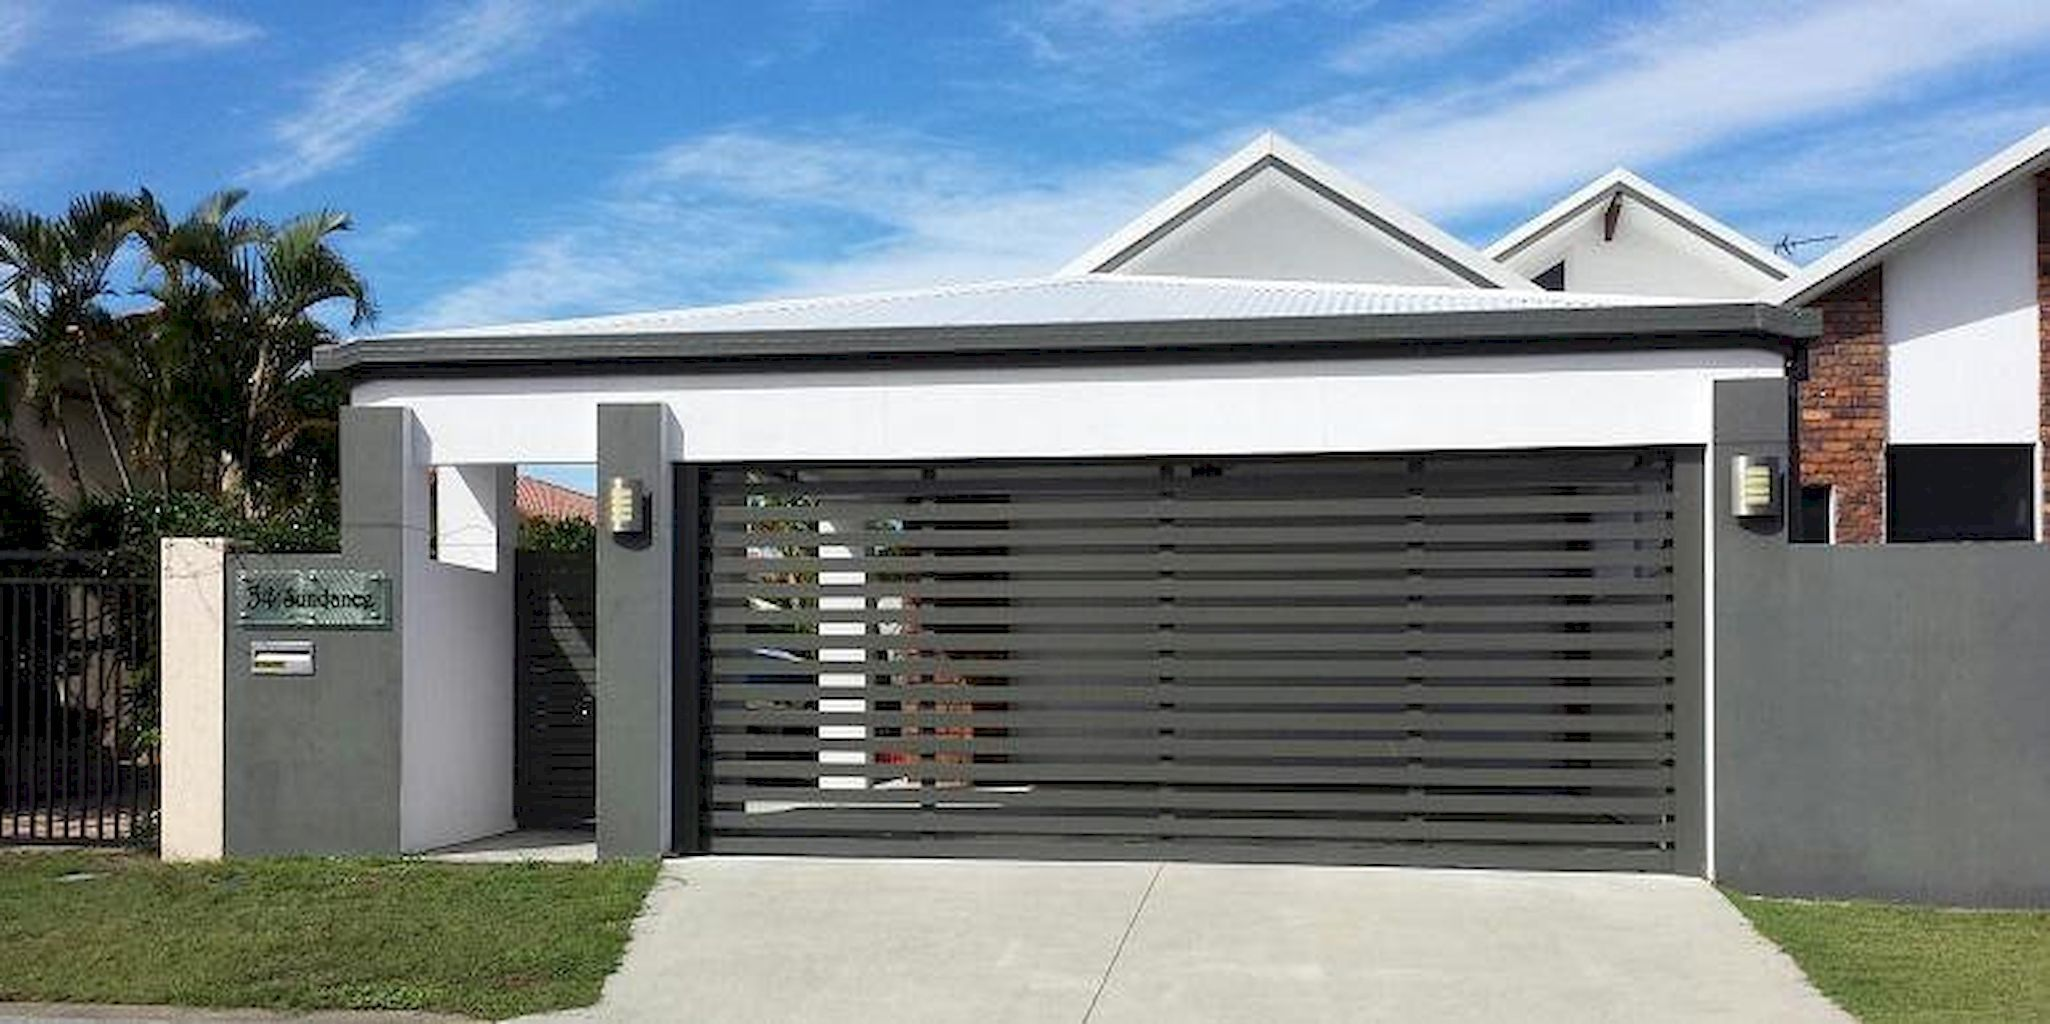 55 adorable modern carports garage designs ideas